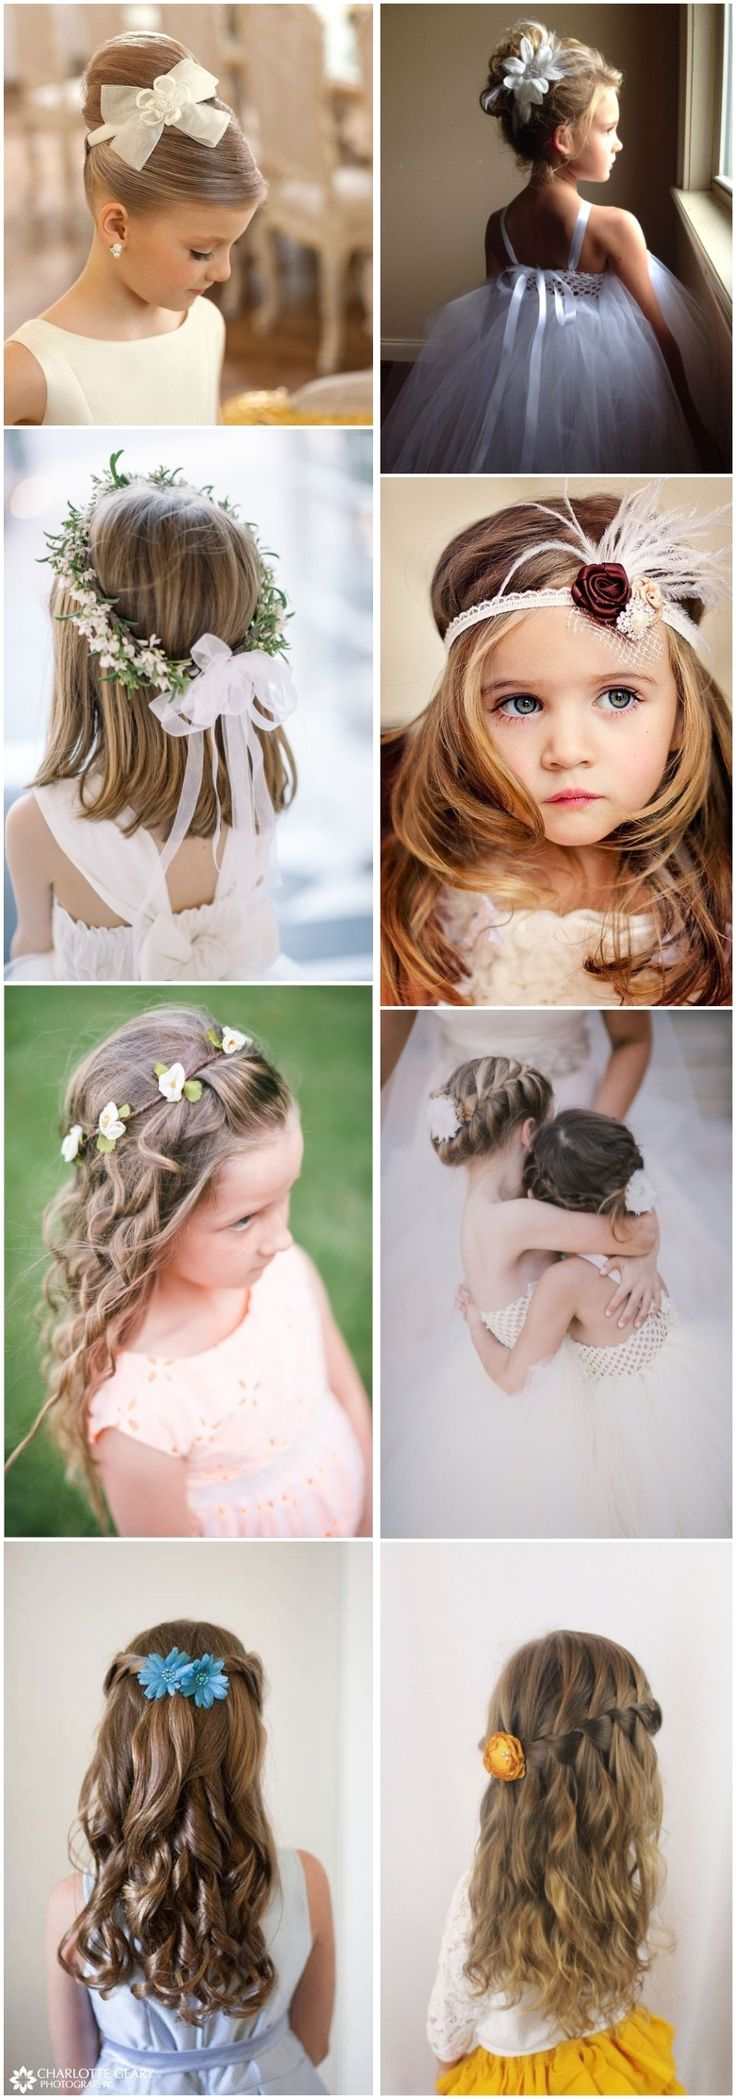 cute little girl hairstyles-updos, braids, waterfall #weddings #hairstyles #wedd...